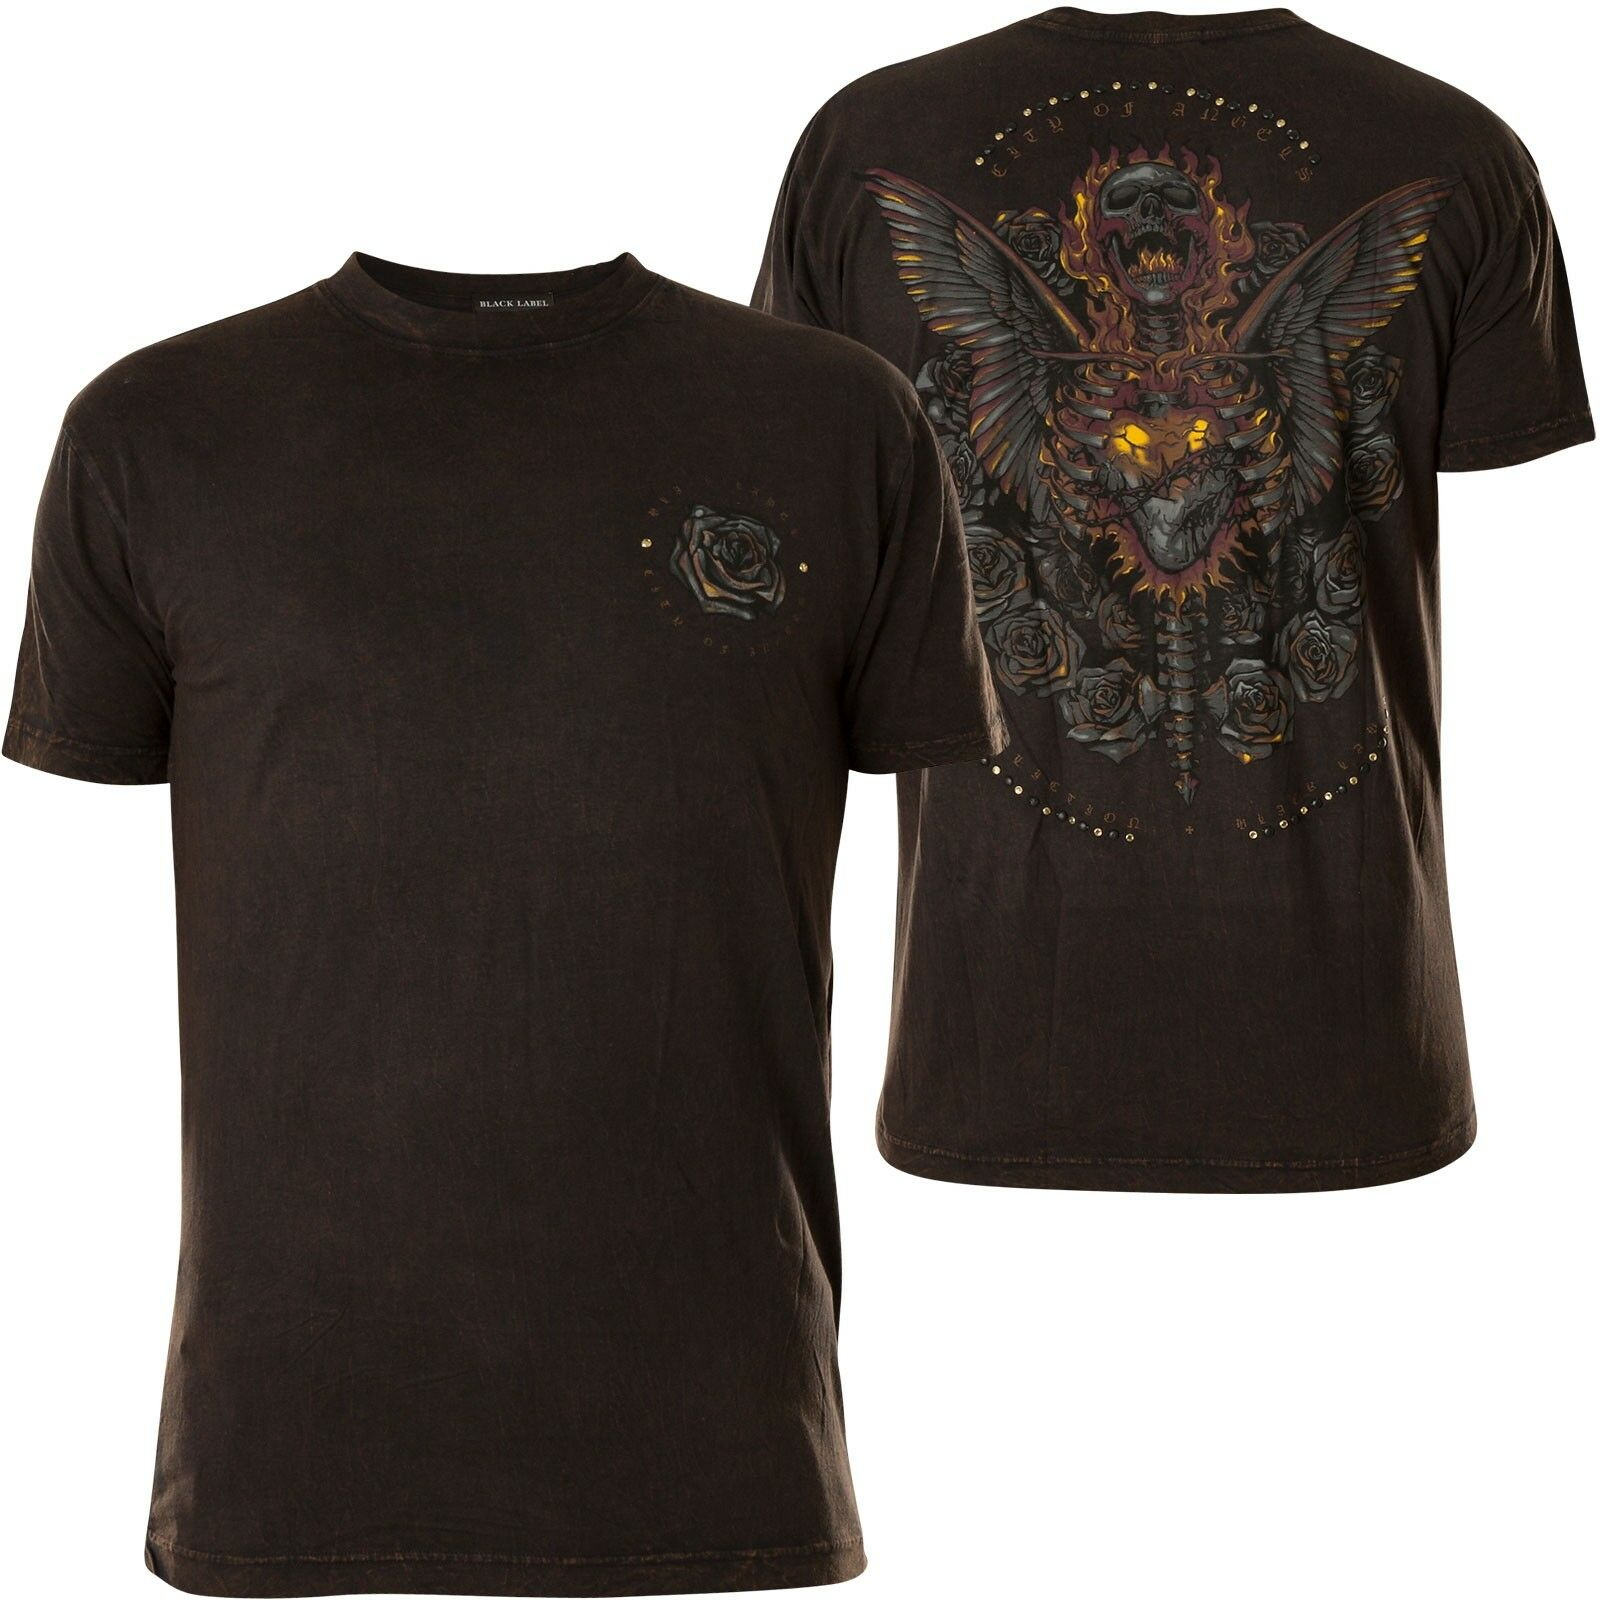 AFFLICTION T-Shirt Forged In Fait Schwarz T-Shirts